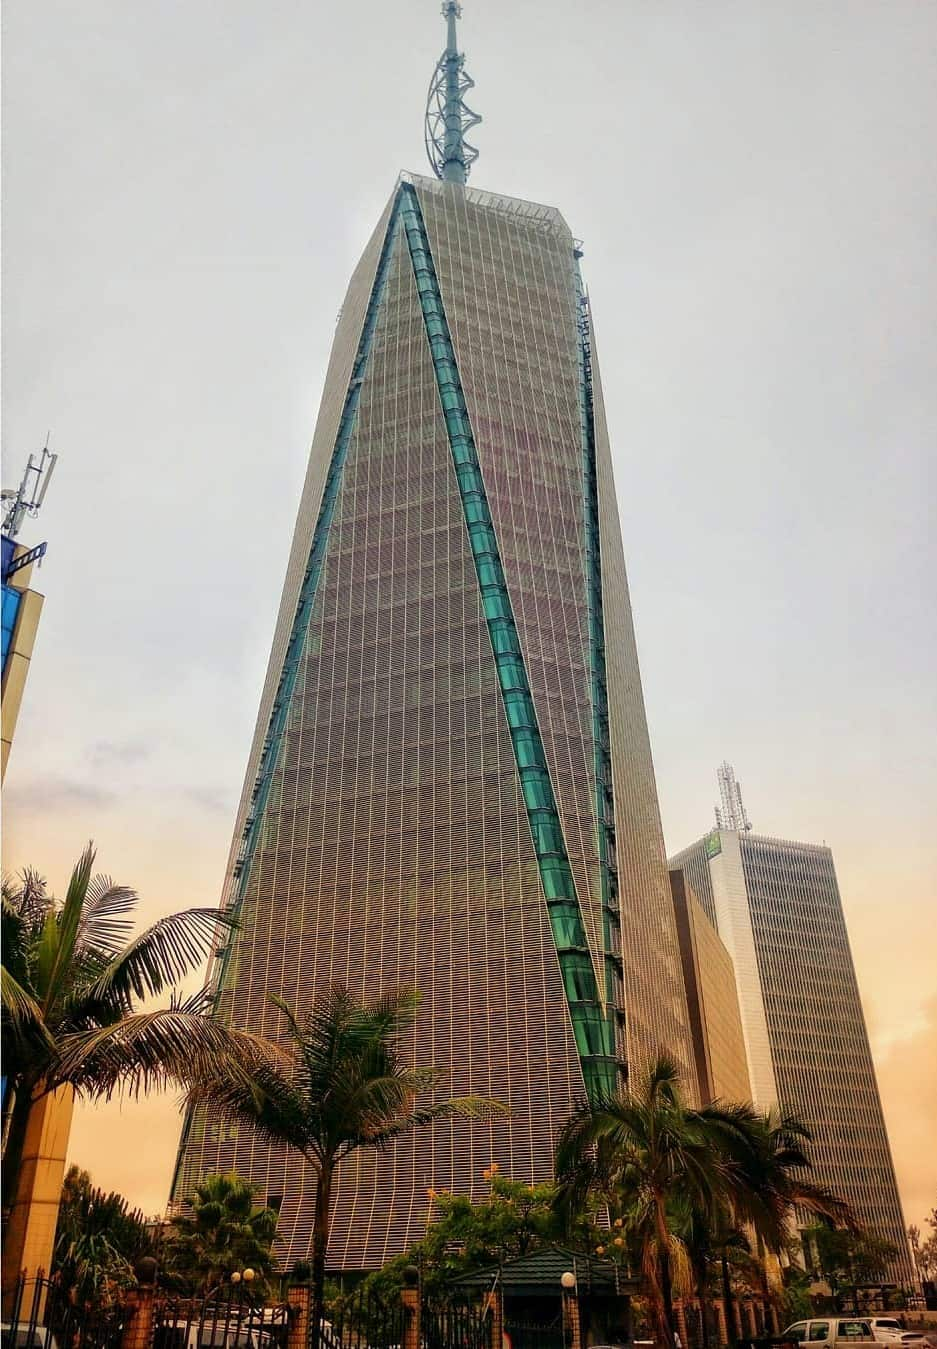 Catch a glimpse of some of the tallest buildings in Africa ...